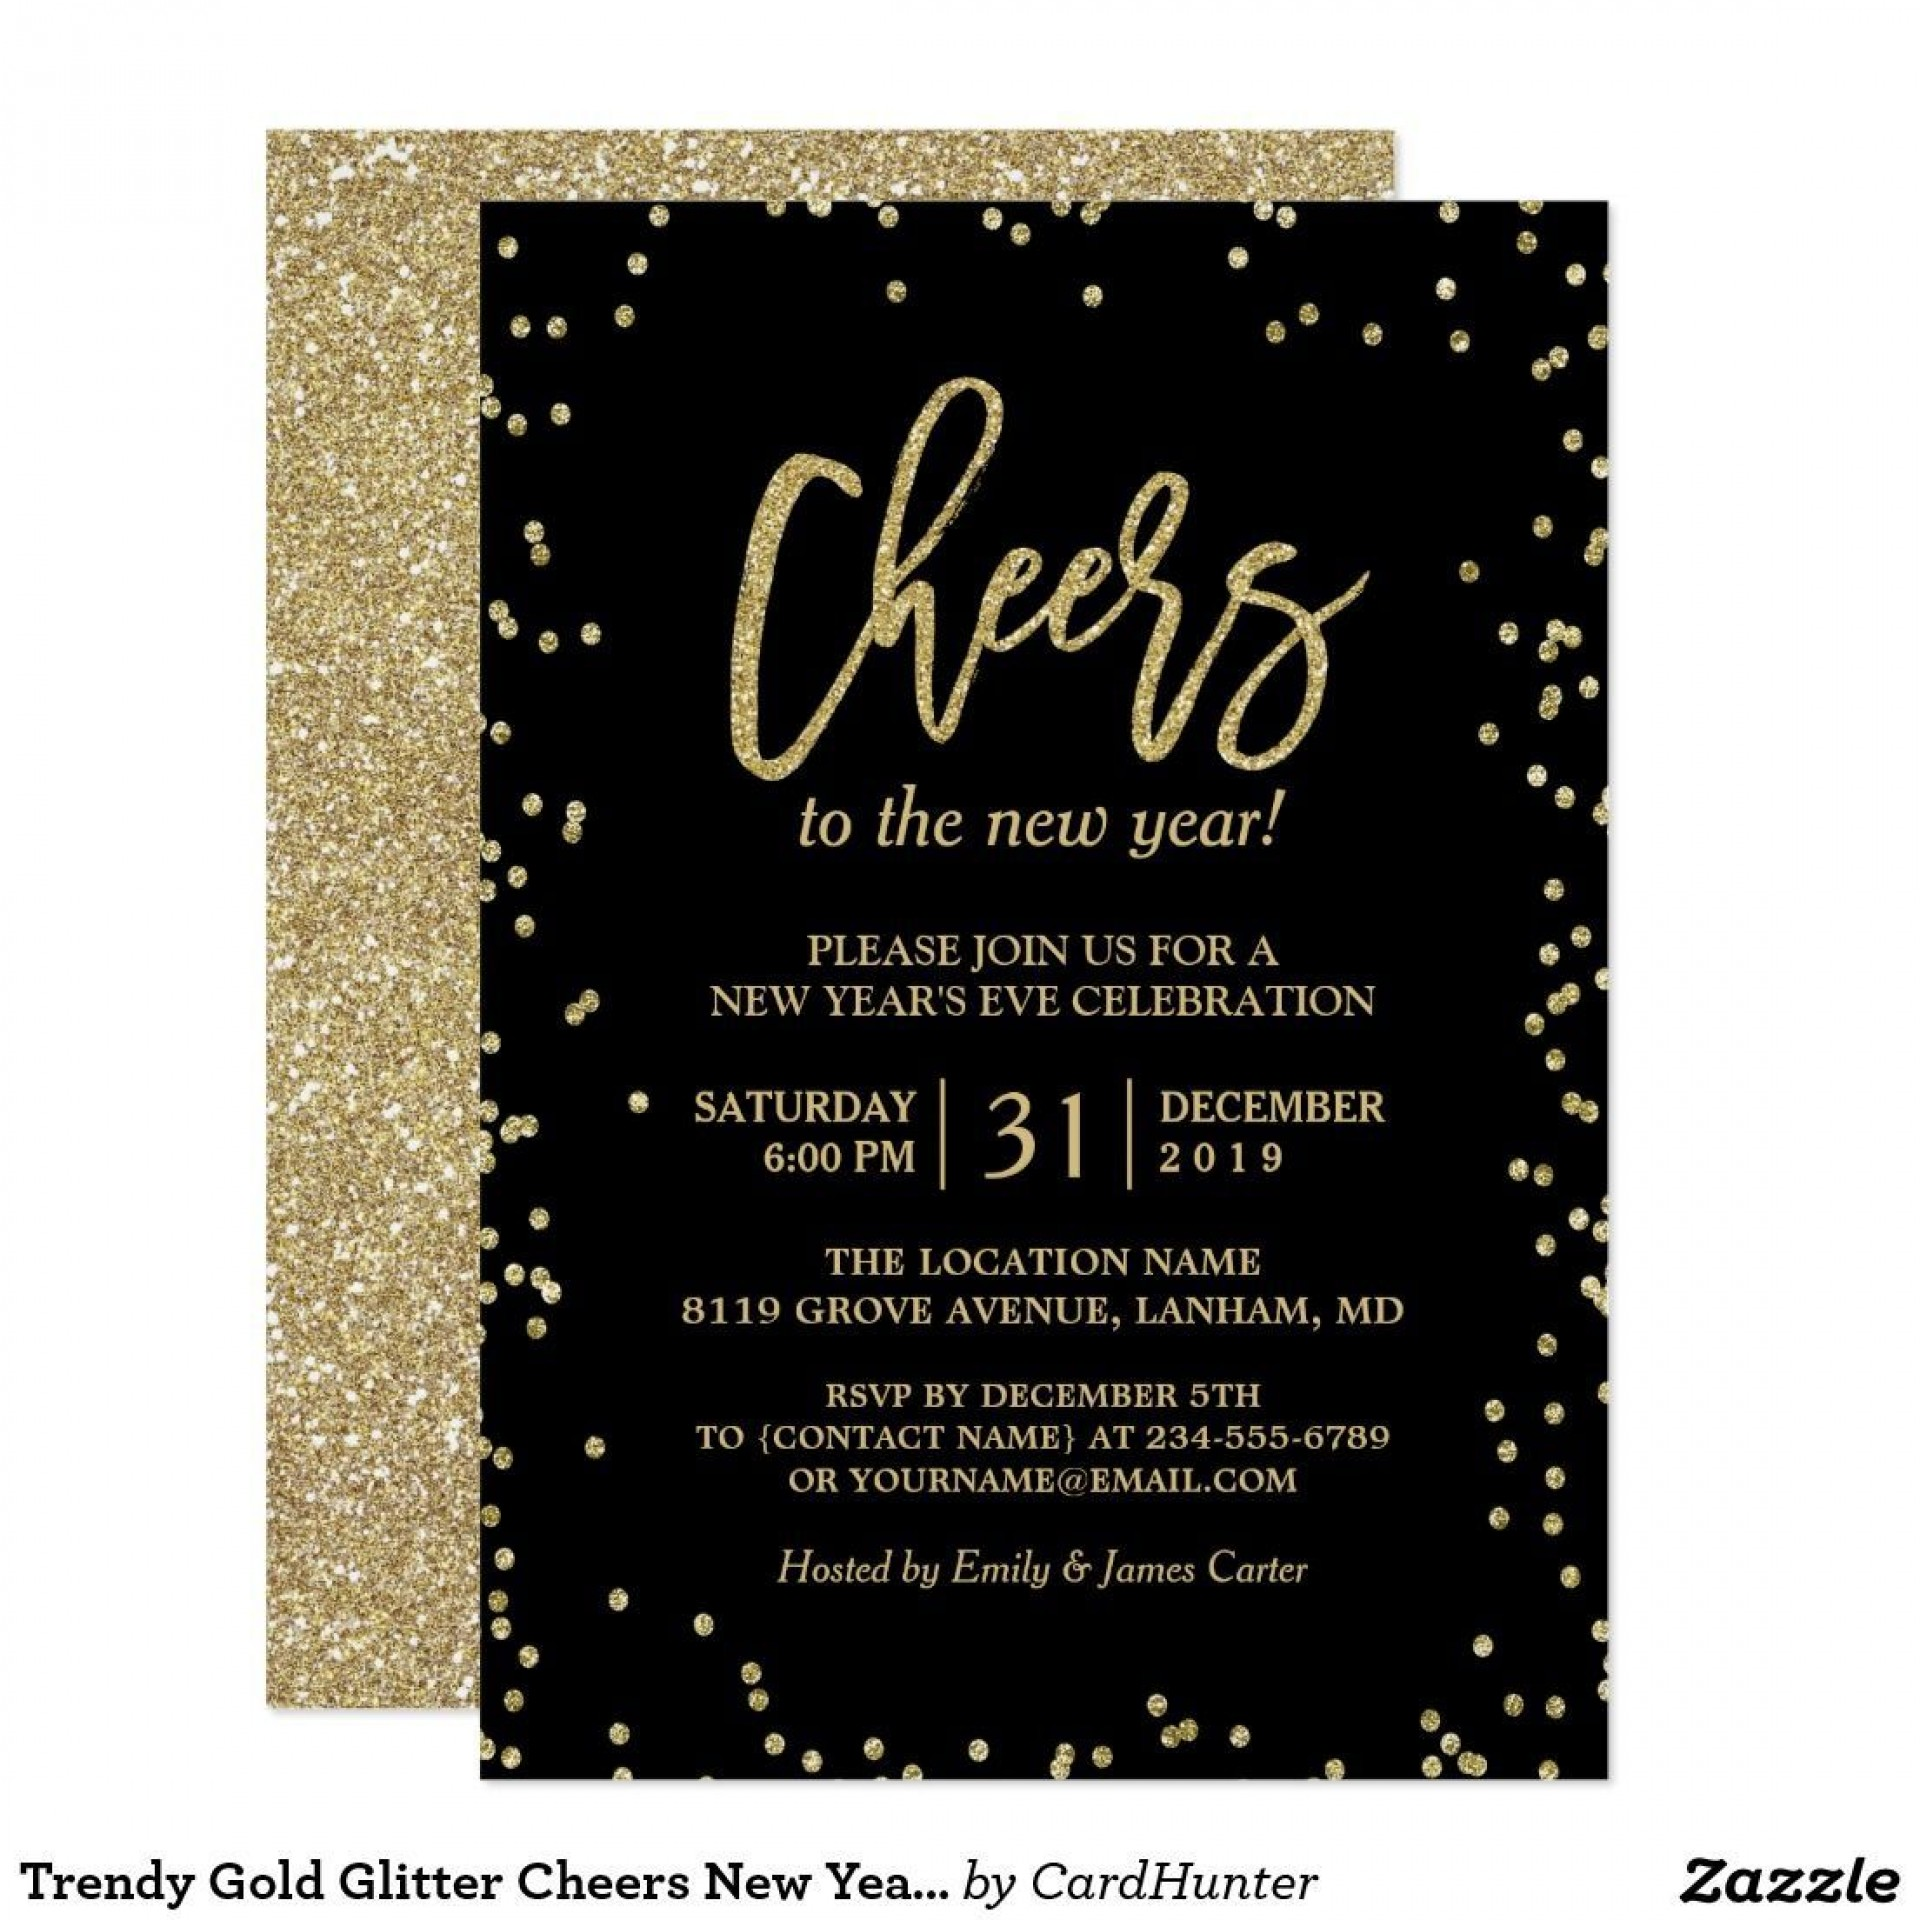 003 Fascinating New Year Eve Invitation Template High Definition  Party Free Word1920